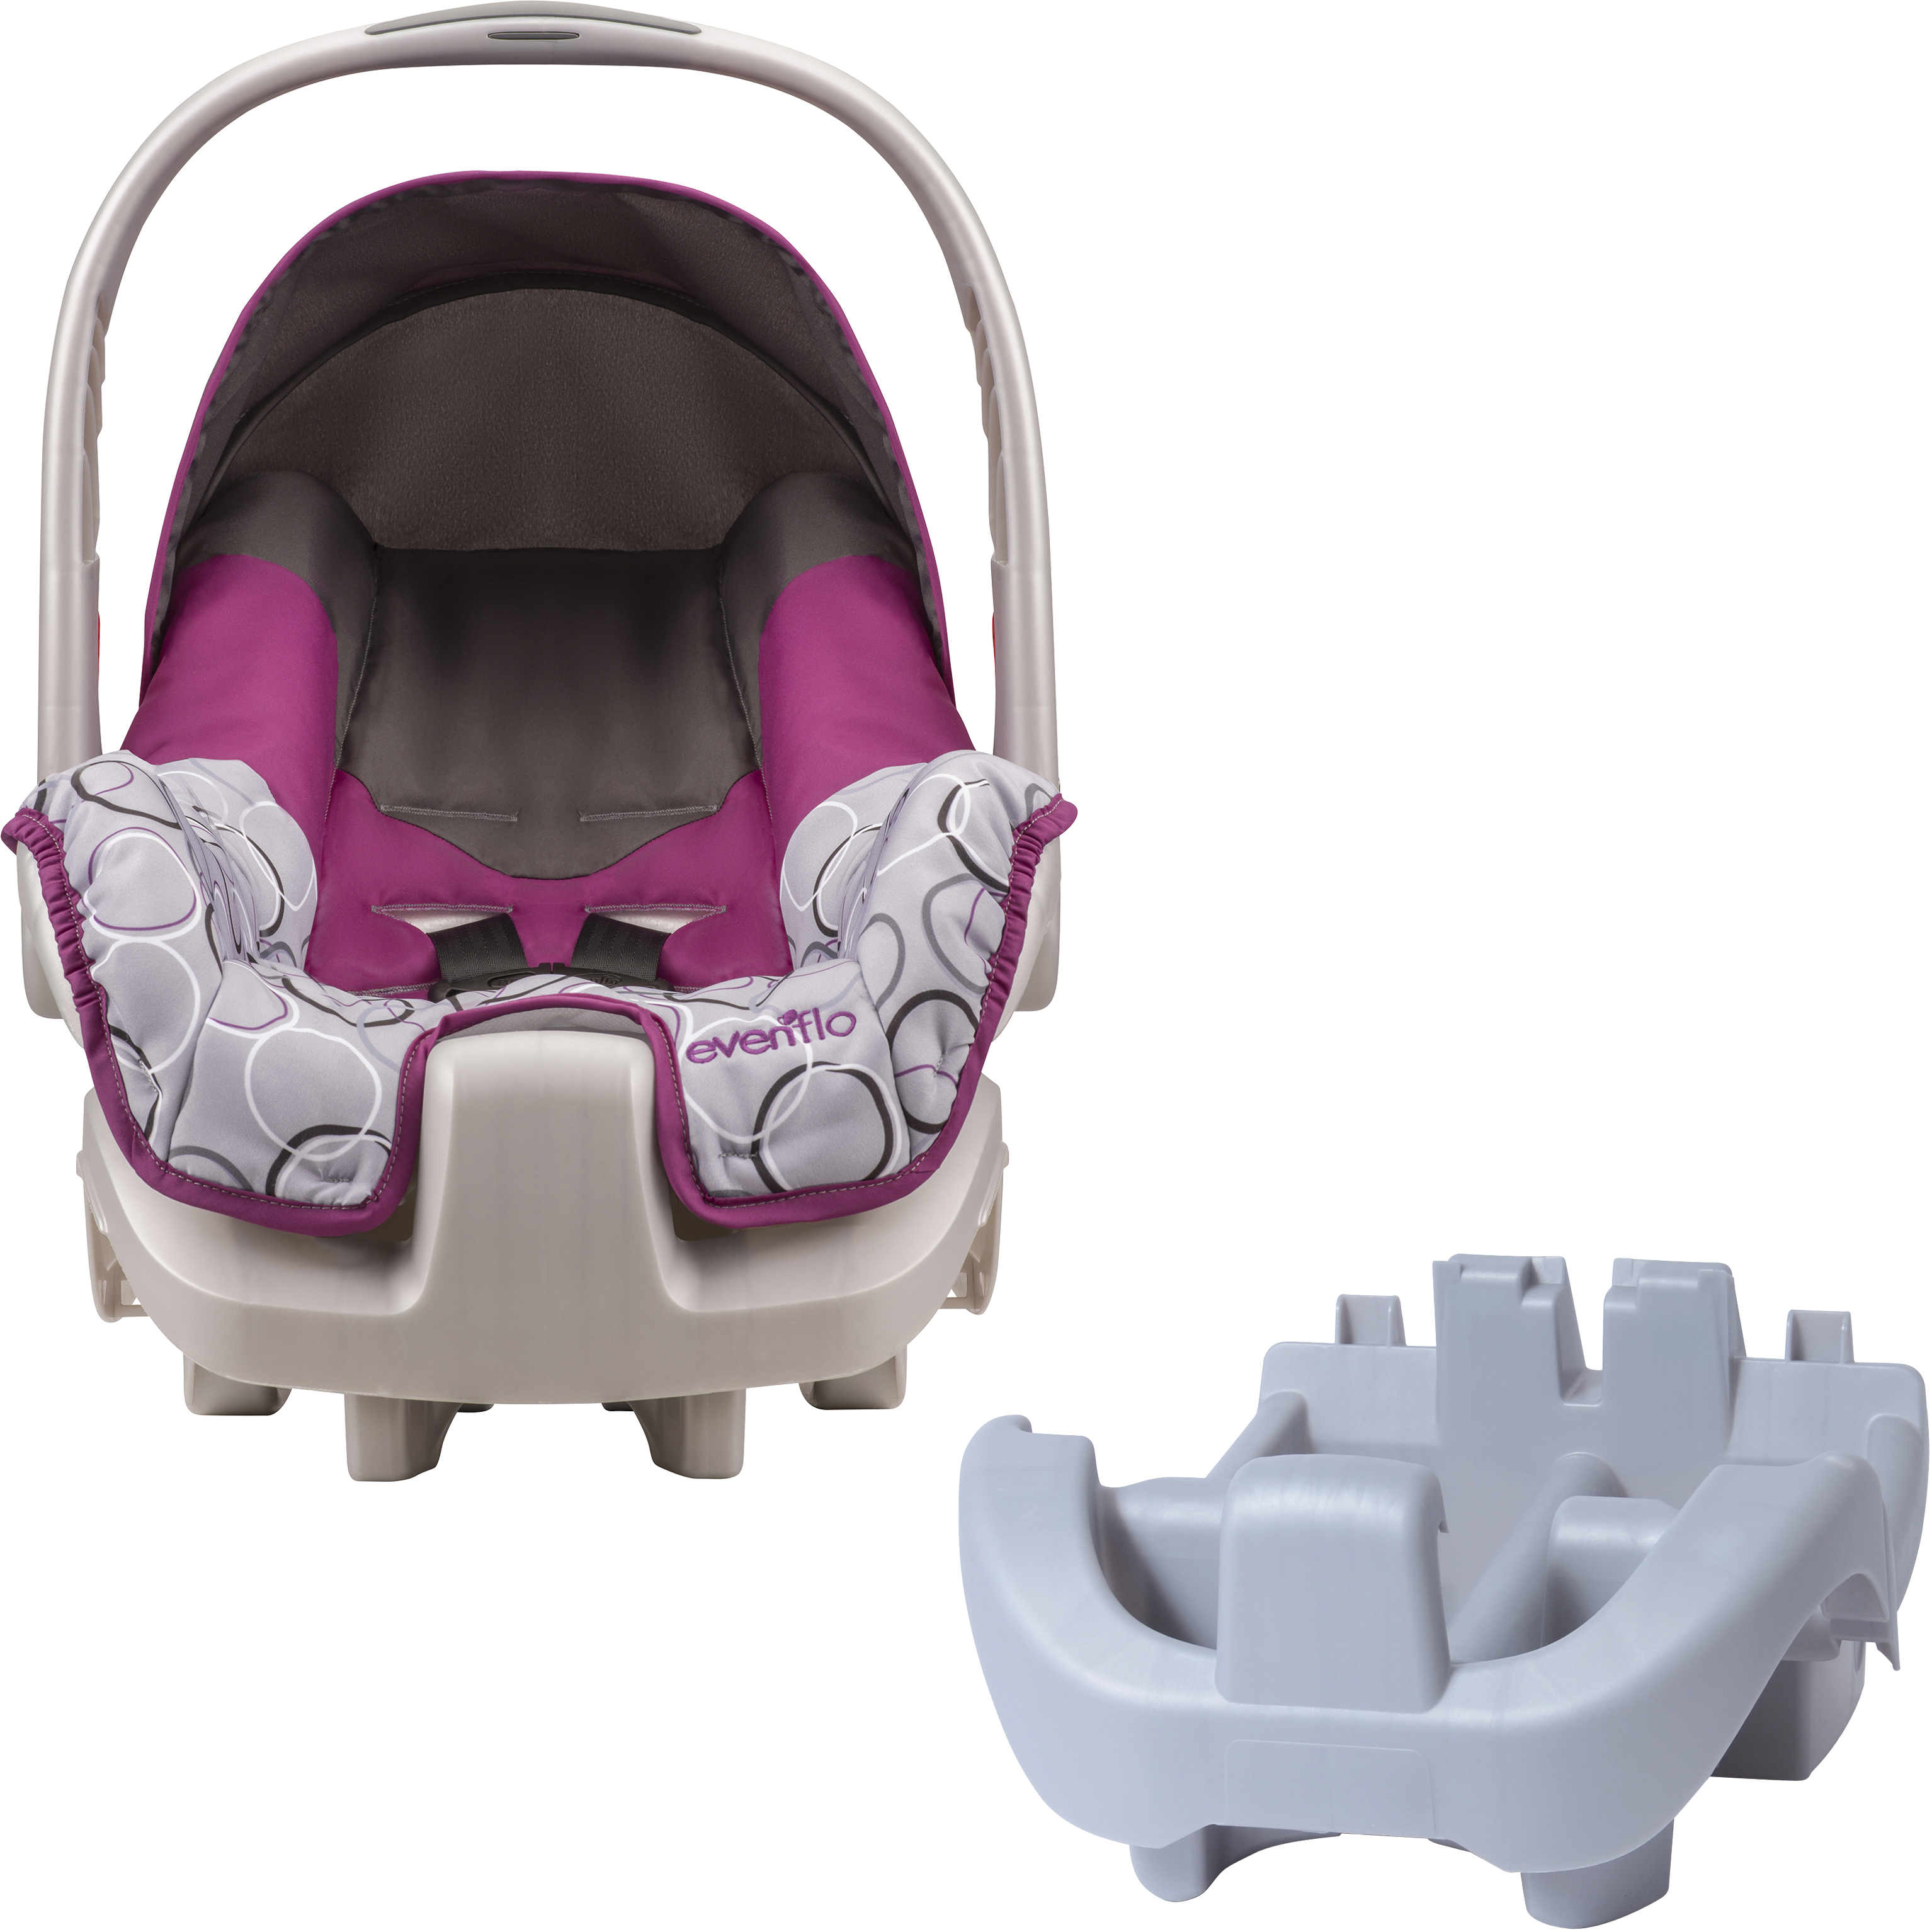 Evenflo Nurture Infant Car Seat, Ali, with BONUS Nurture Car Seat Base